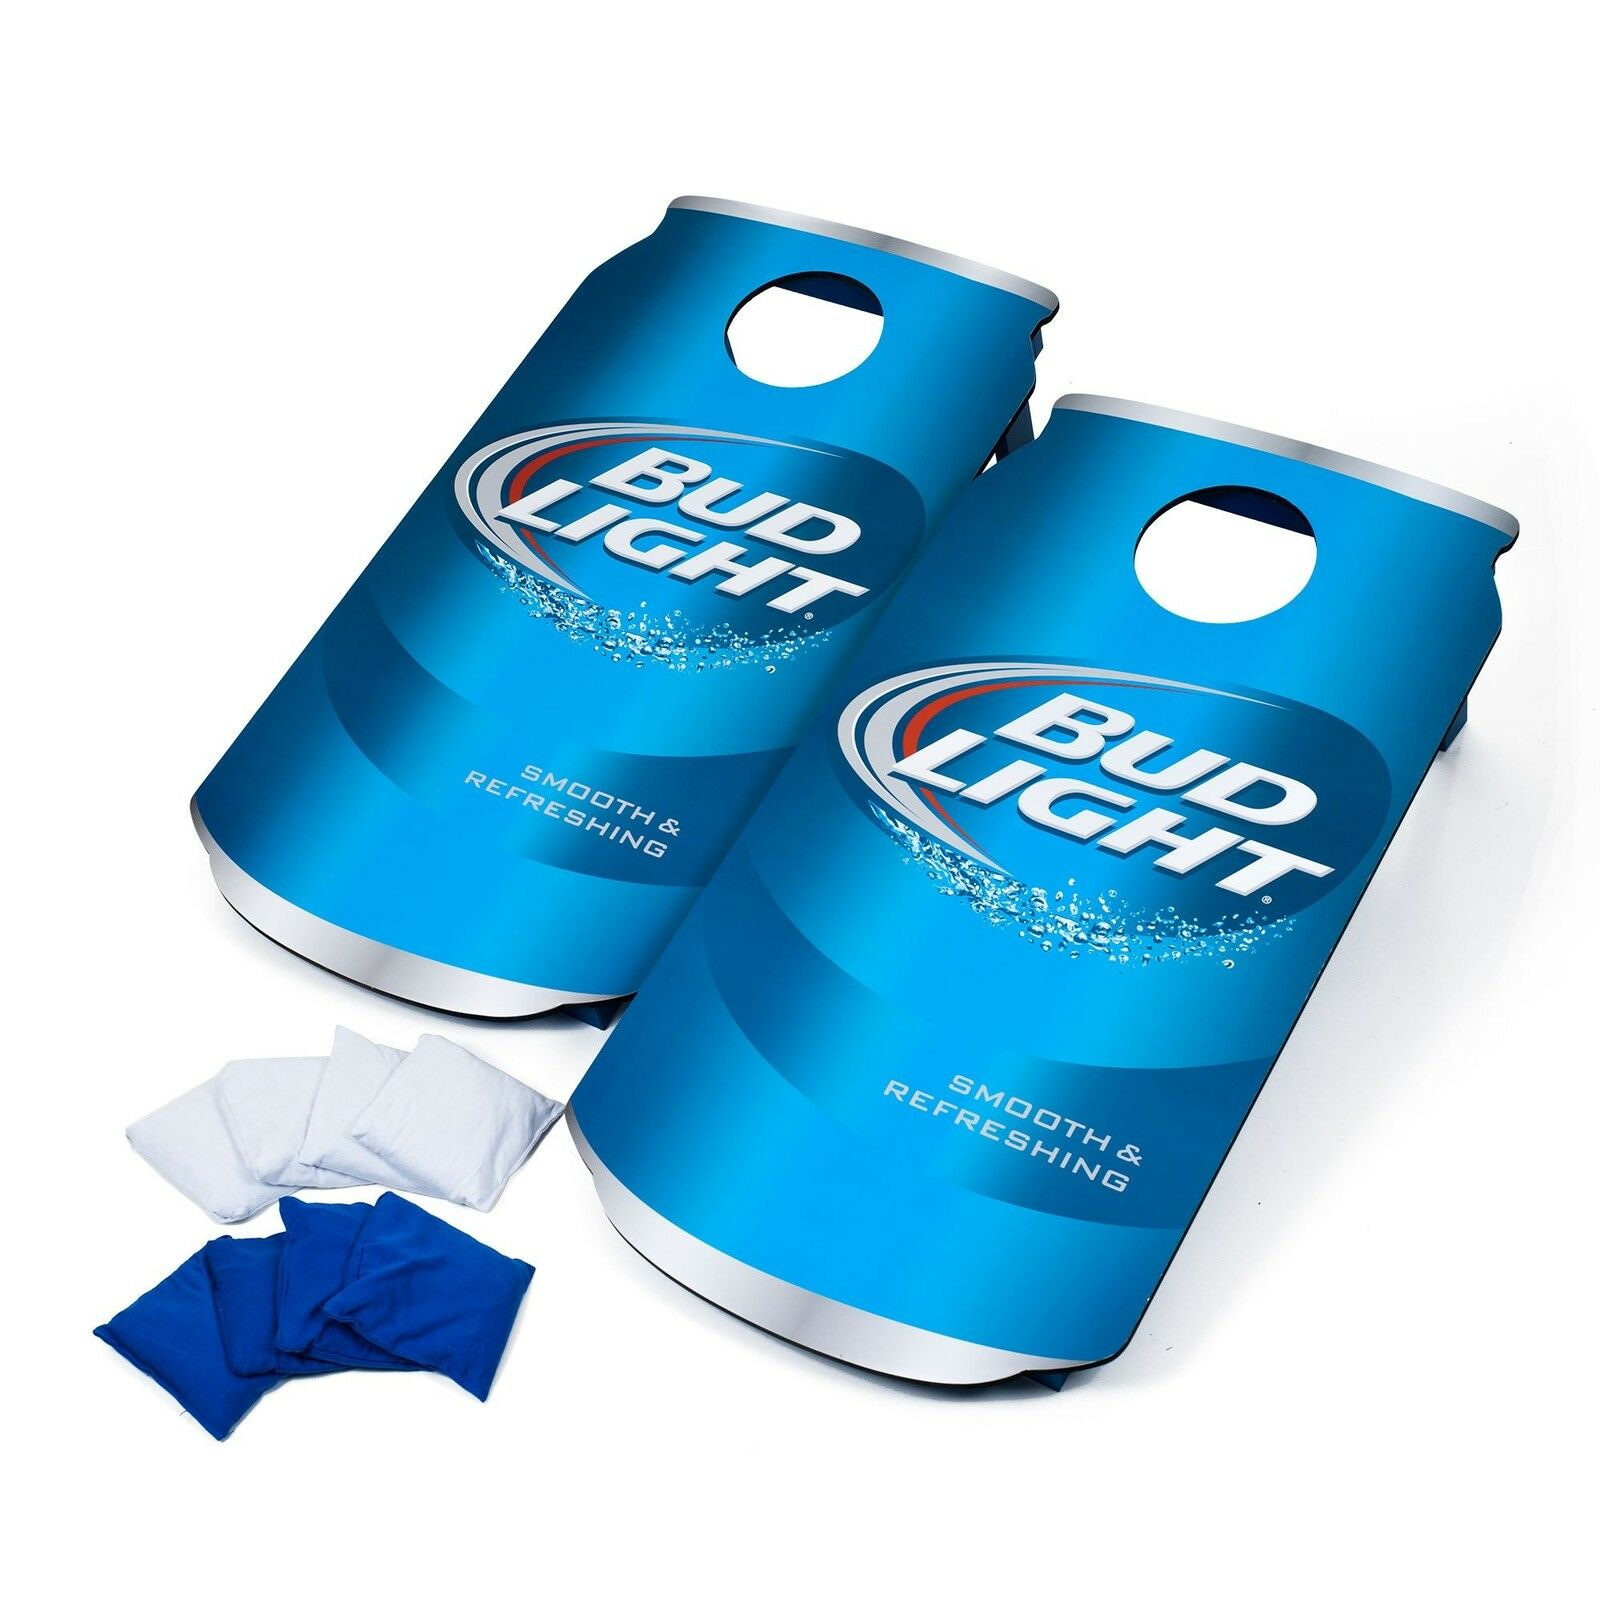 2  Bud Light Cornhole Boards Bean Bag Toss Hole Set Outdoor Tailgate Party Games  hottest new styles